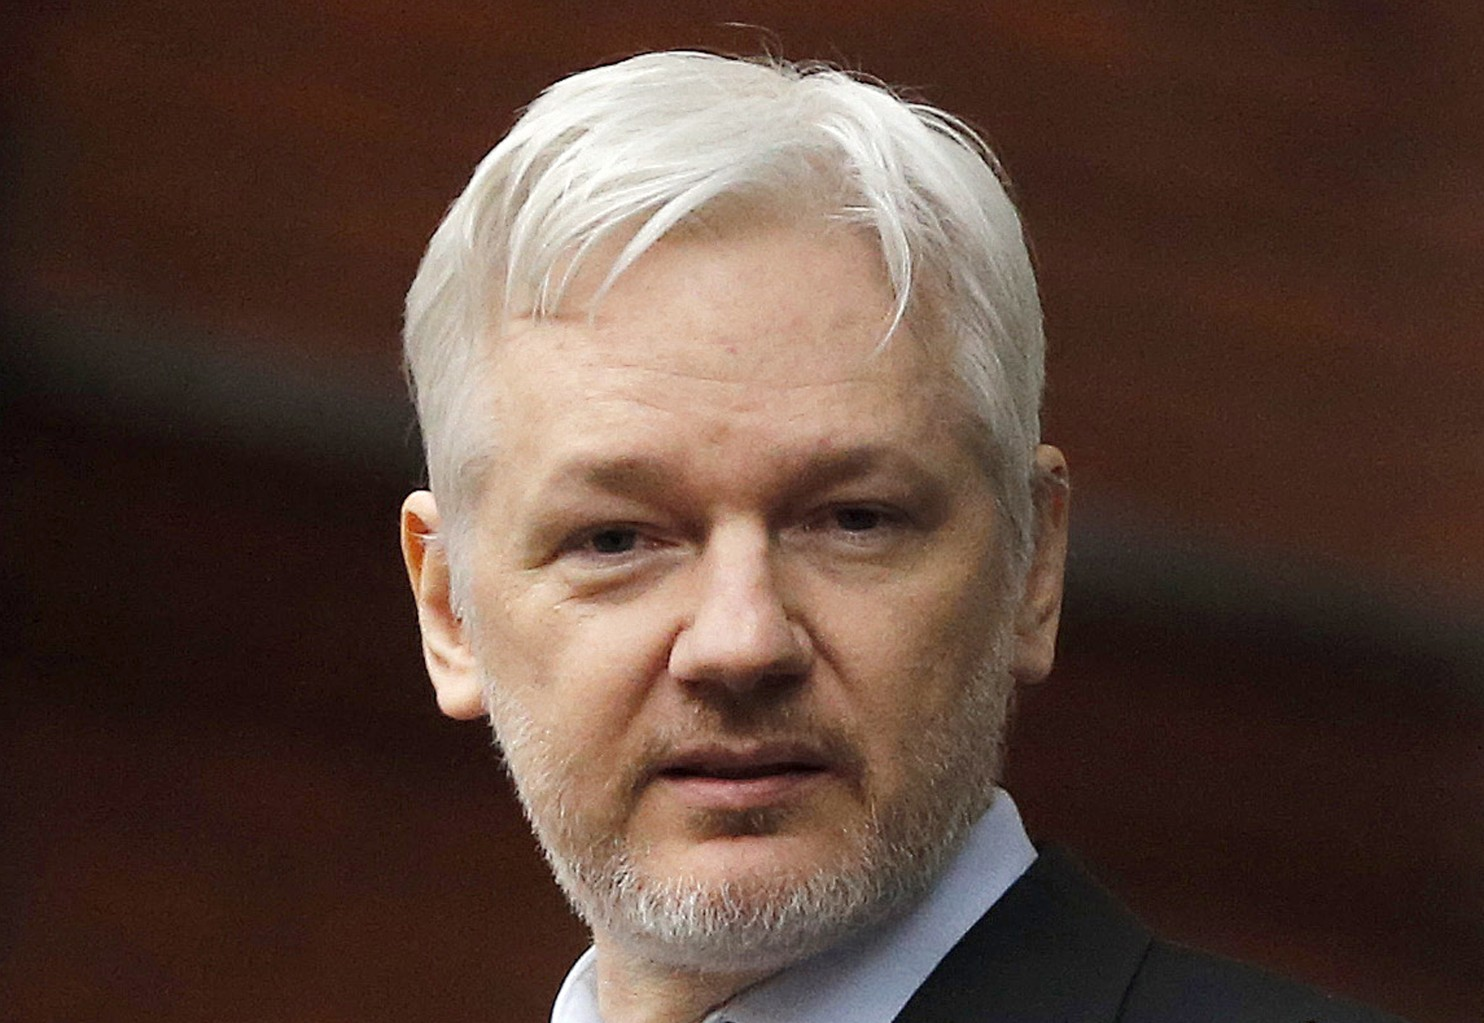 Ecuador has spent $5 million housing Julian Assange